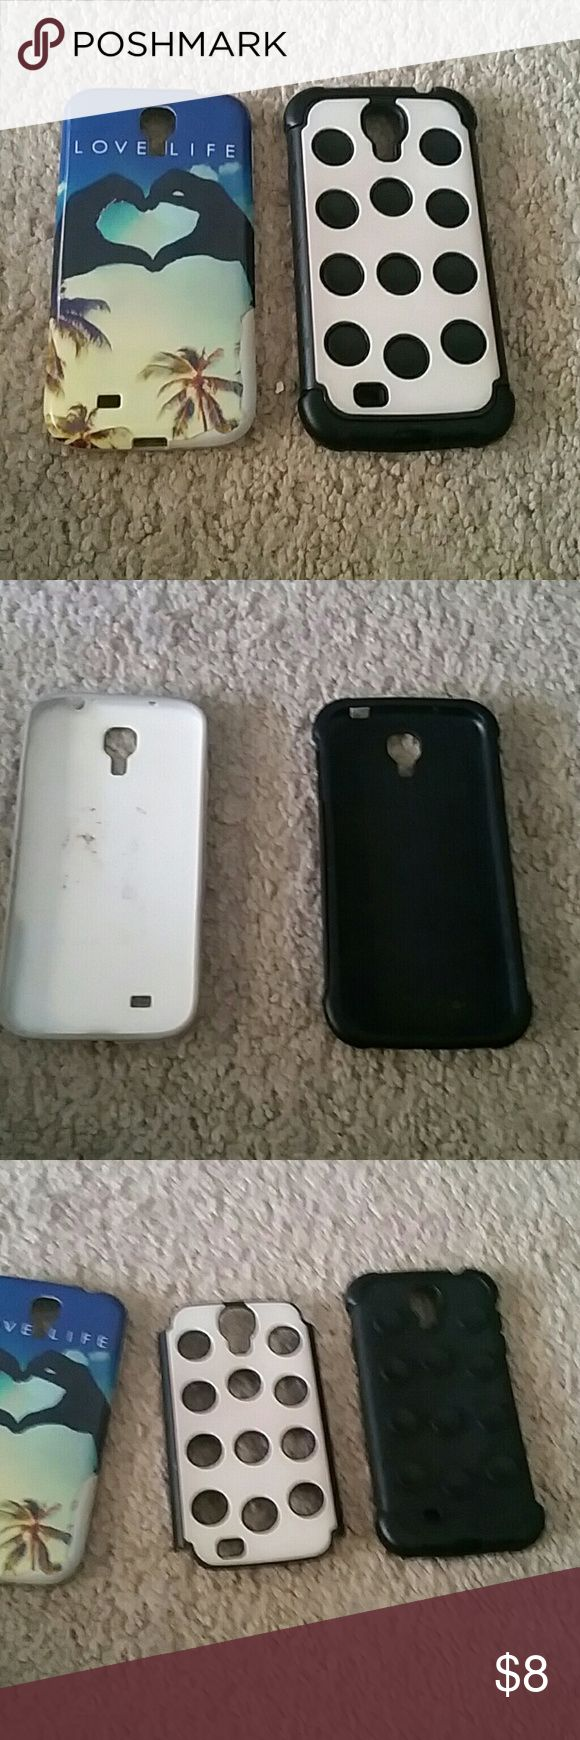 Galaxy 4 cases Two galaxy 4 cases cute and great for protection. Other